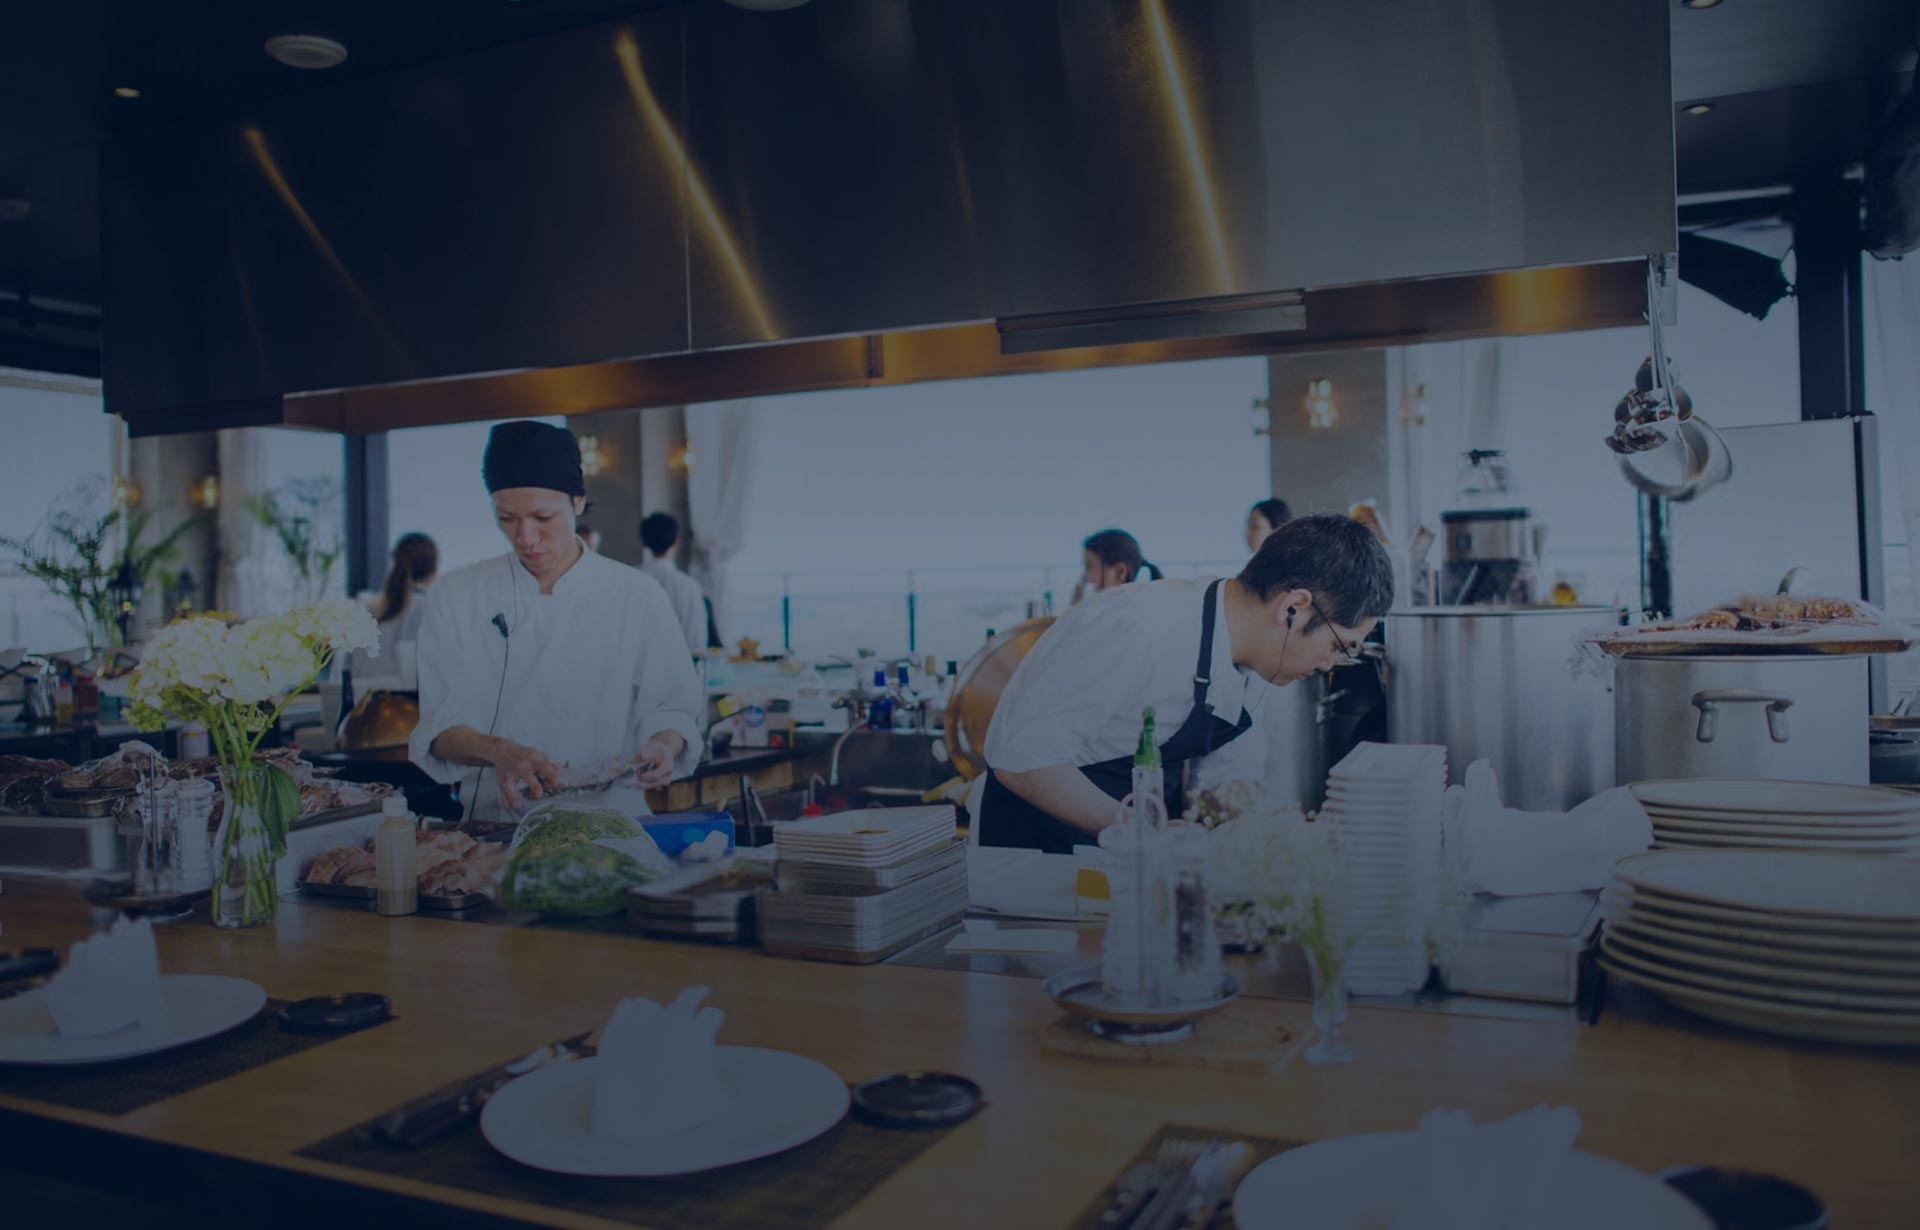 Chefs and cooks working in a clean, open kitchen